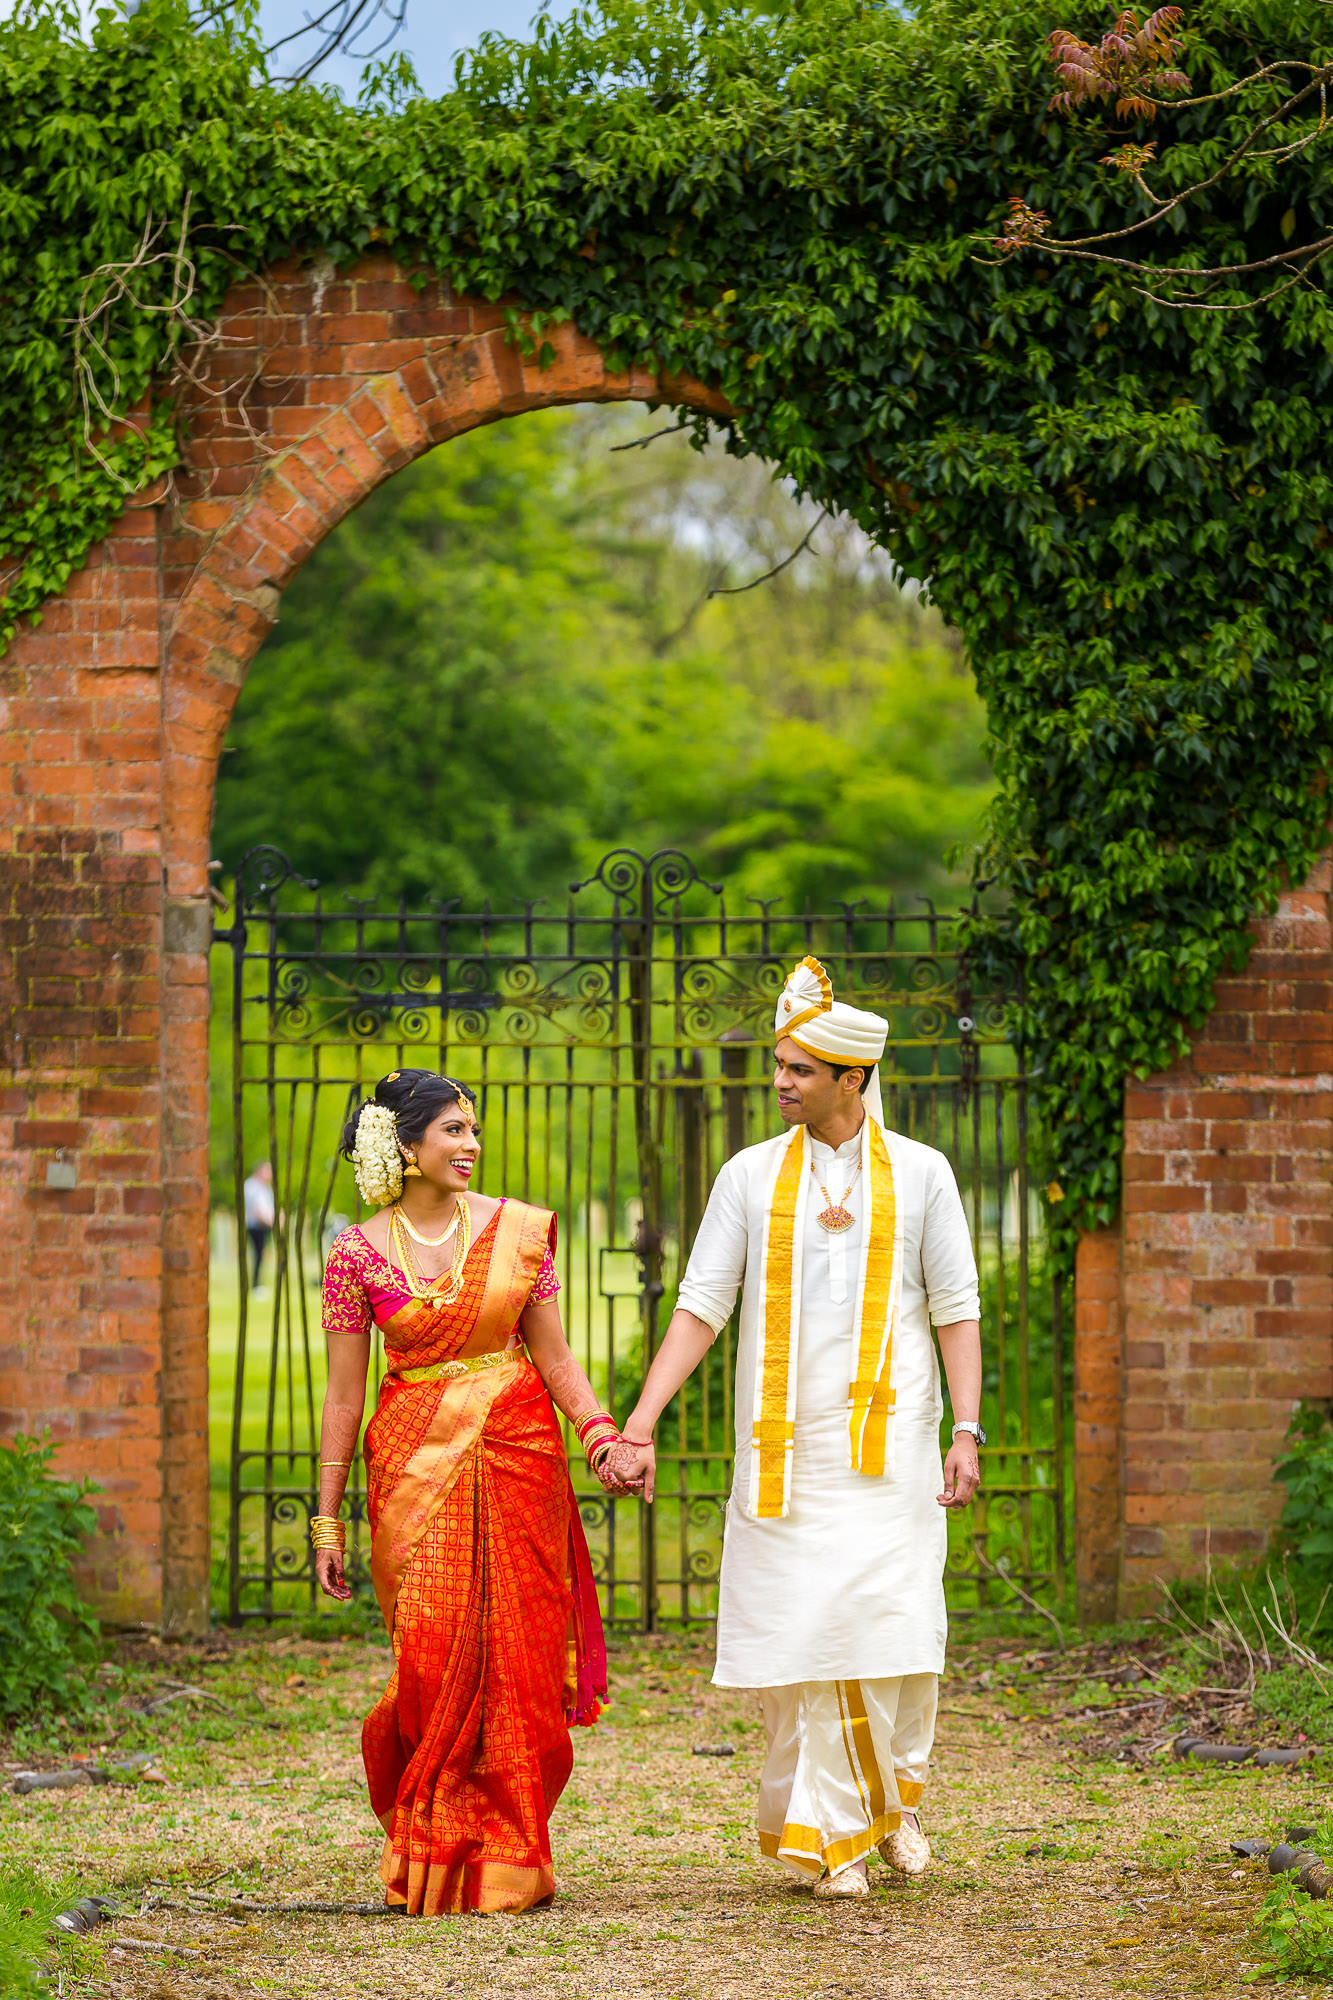 asian-wedding-hindu-tamil-photographer-heythorpe-oxford-0076.jpg